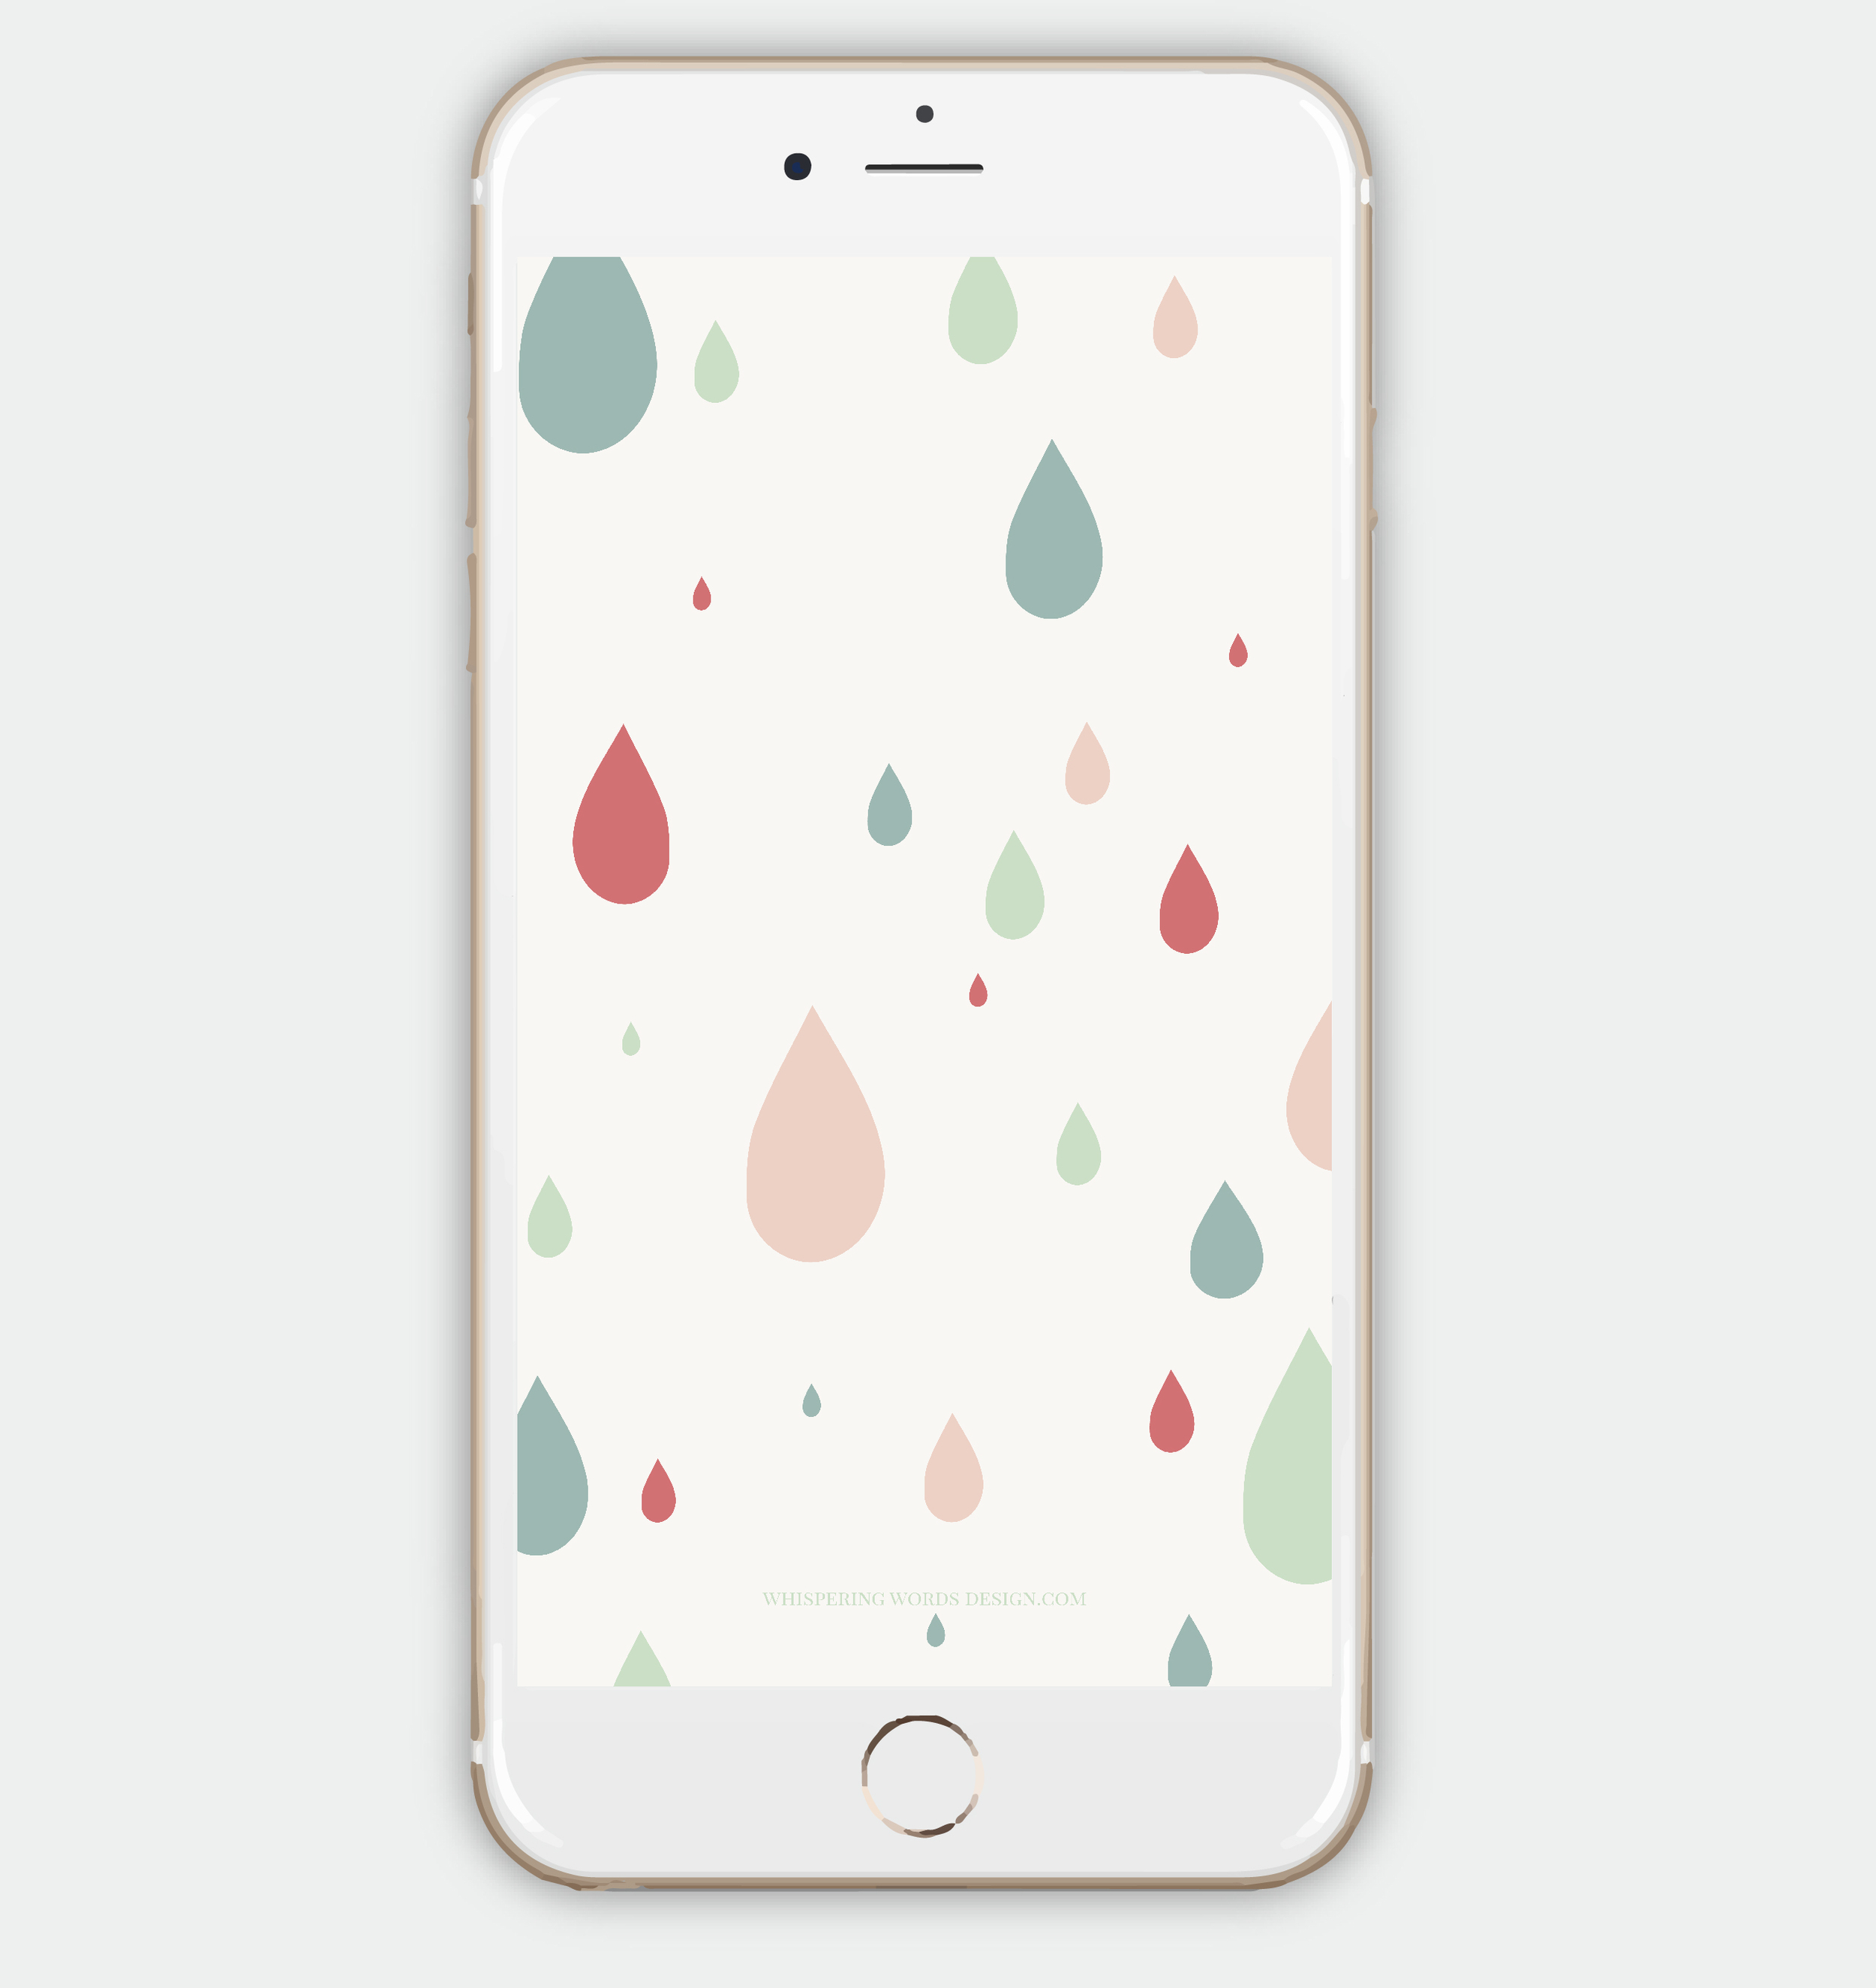 Free Rain Drops iPhone Wallpaper